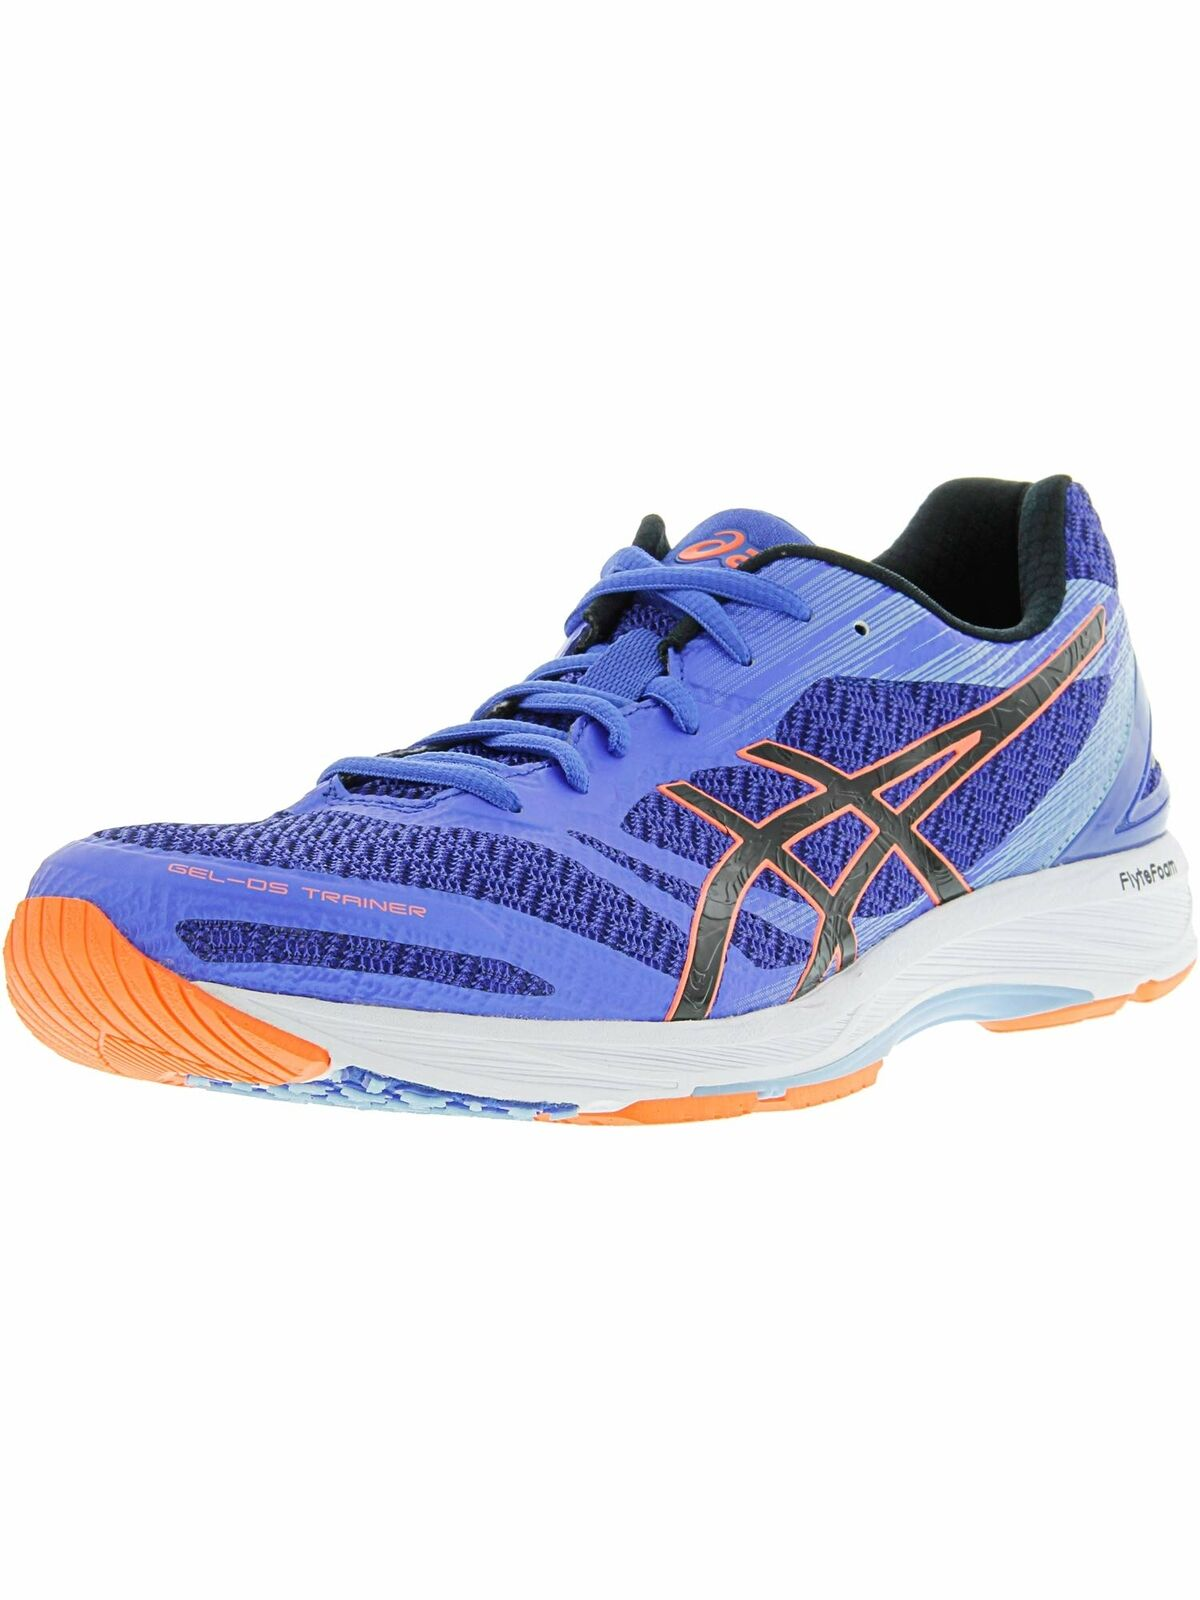 ASICS WOMEN'S GEL-DS TRAINER 22 RUNNING SHOE blueE PURPLE BLACK CORAL 7 M US